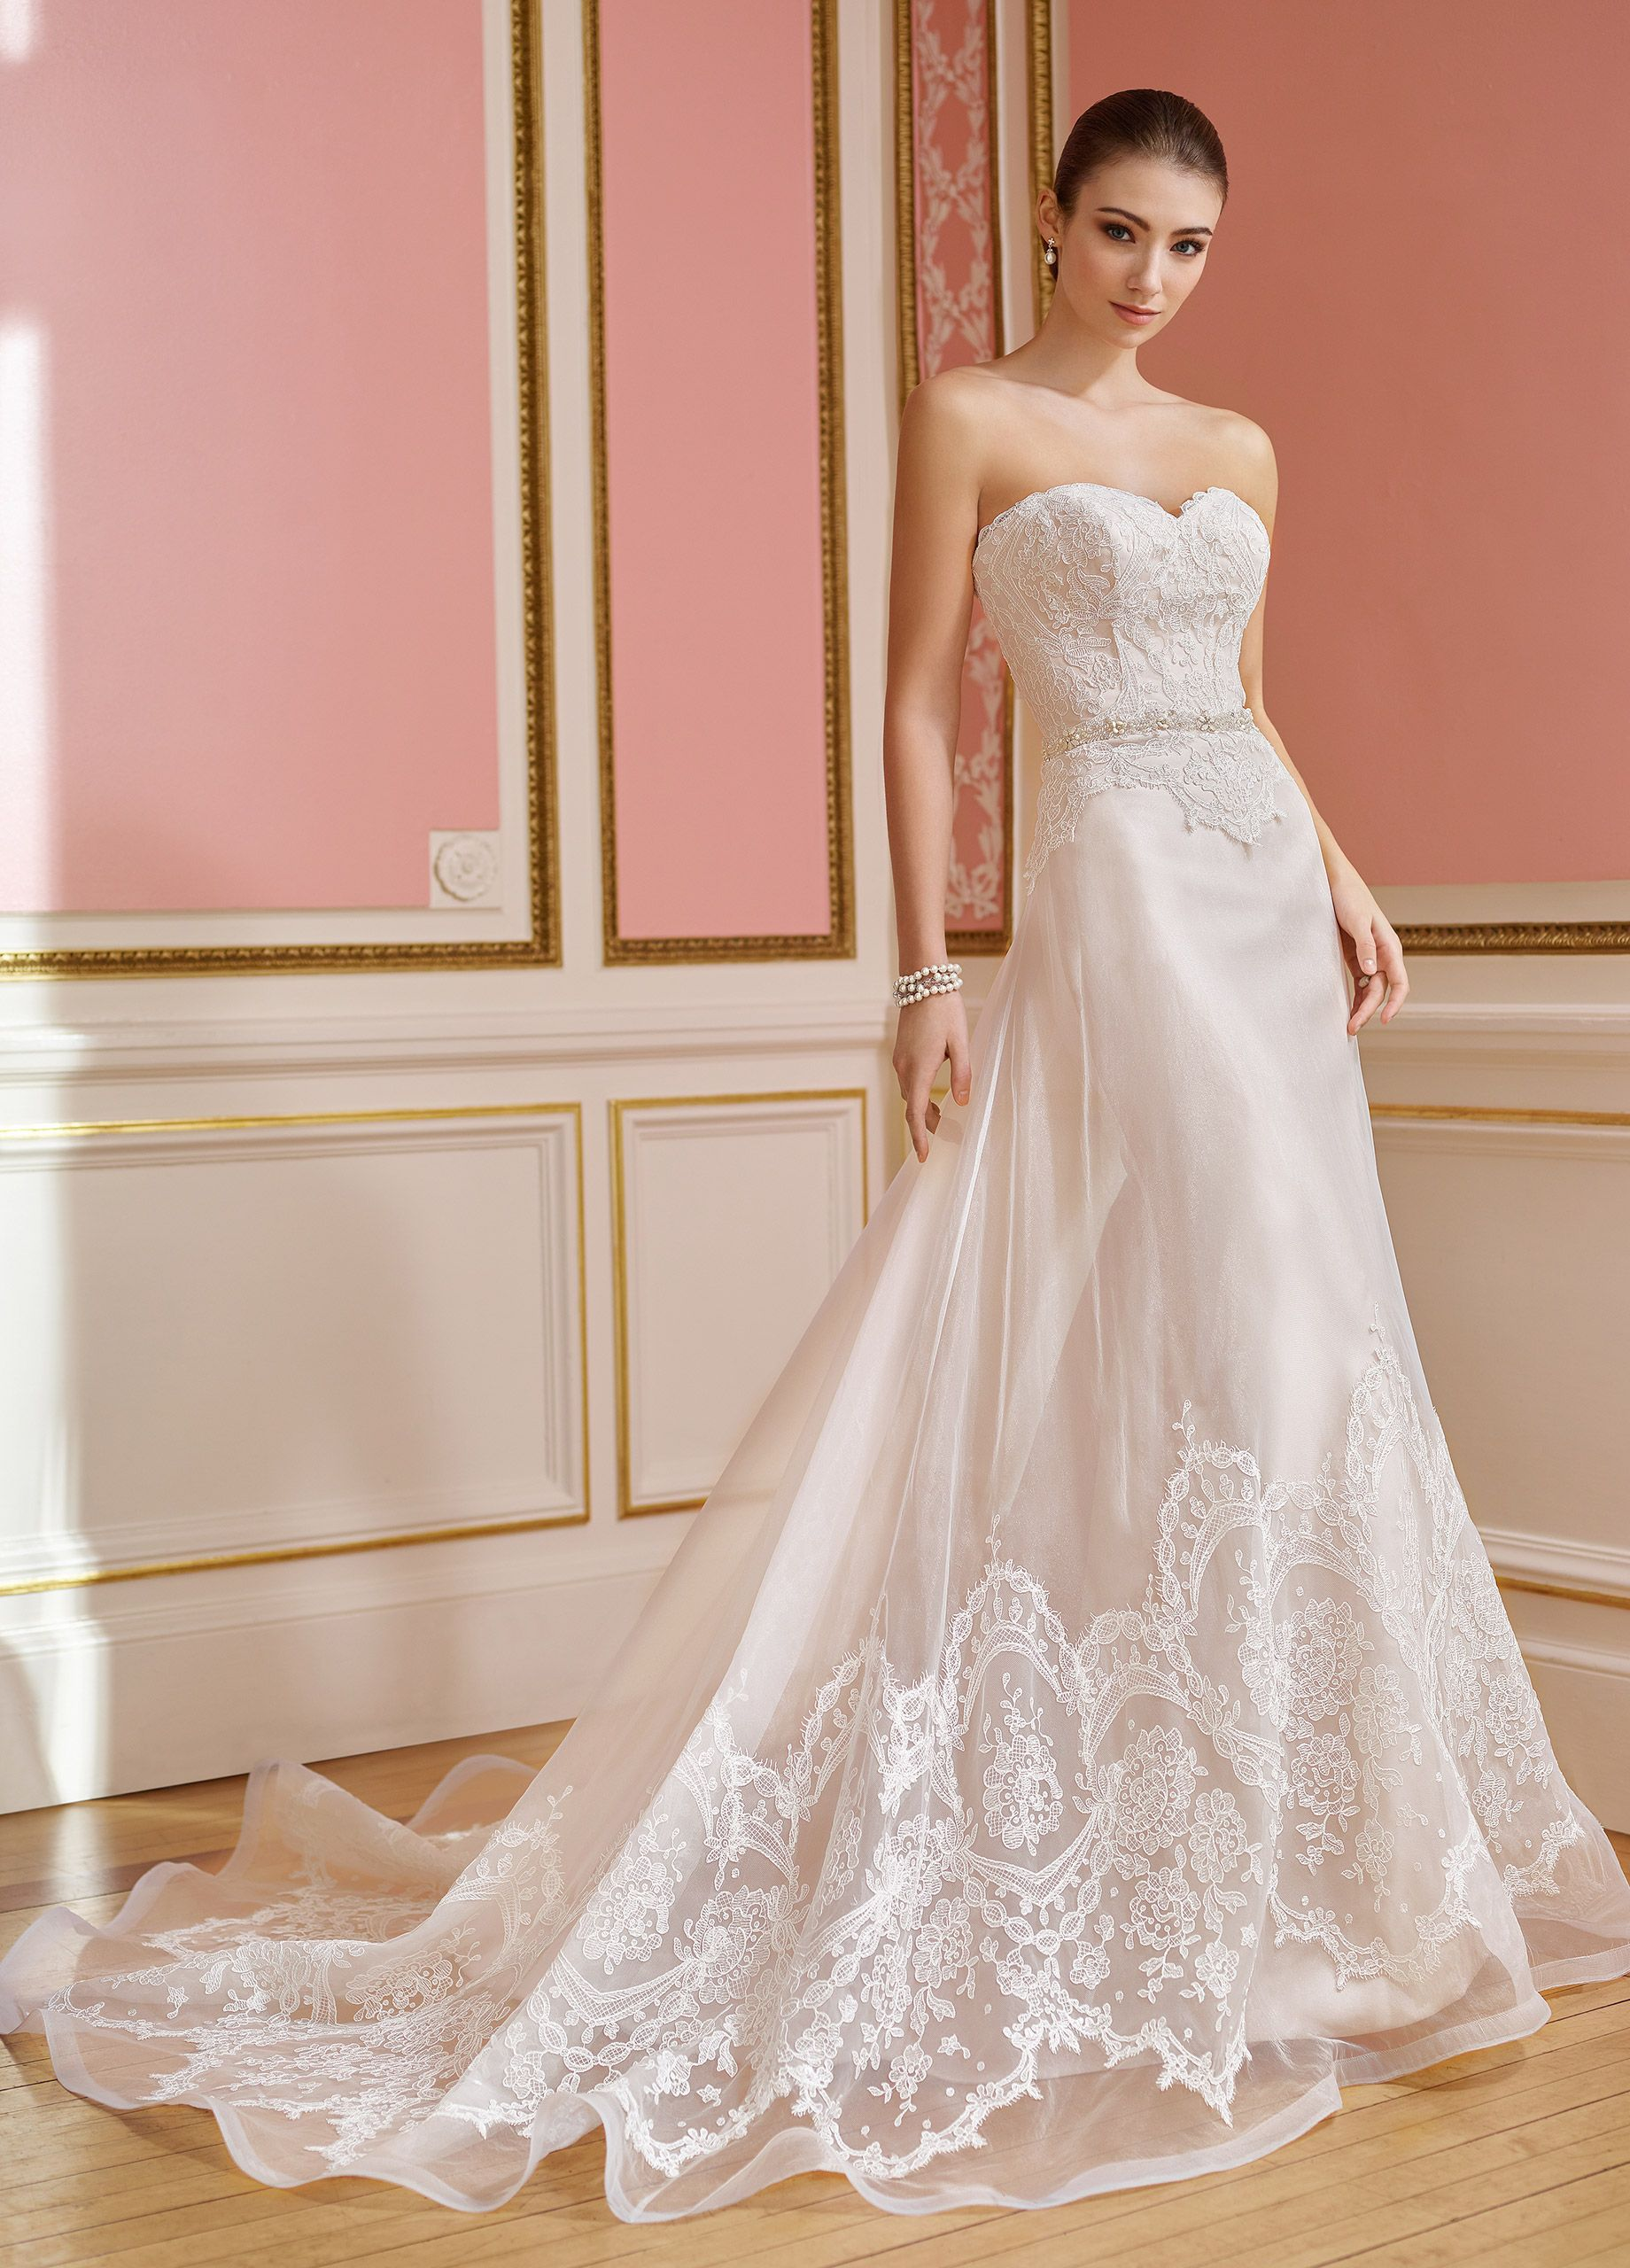 Lace sweetheart wedding dress  Strapless Organza and Lace Wedding Dress  Hallie  Strapless